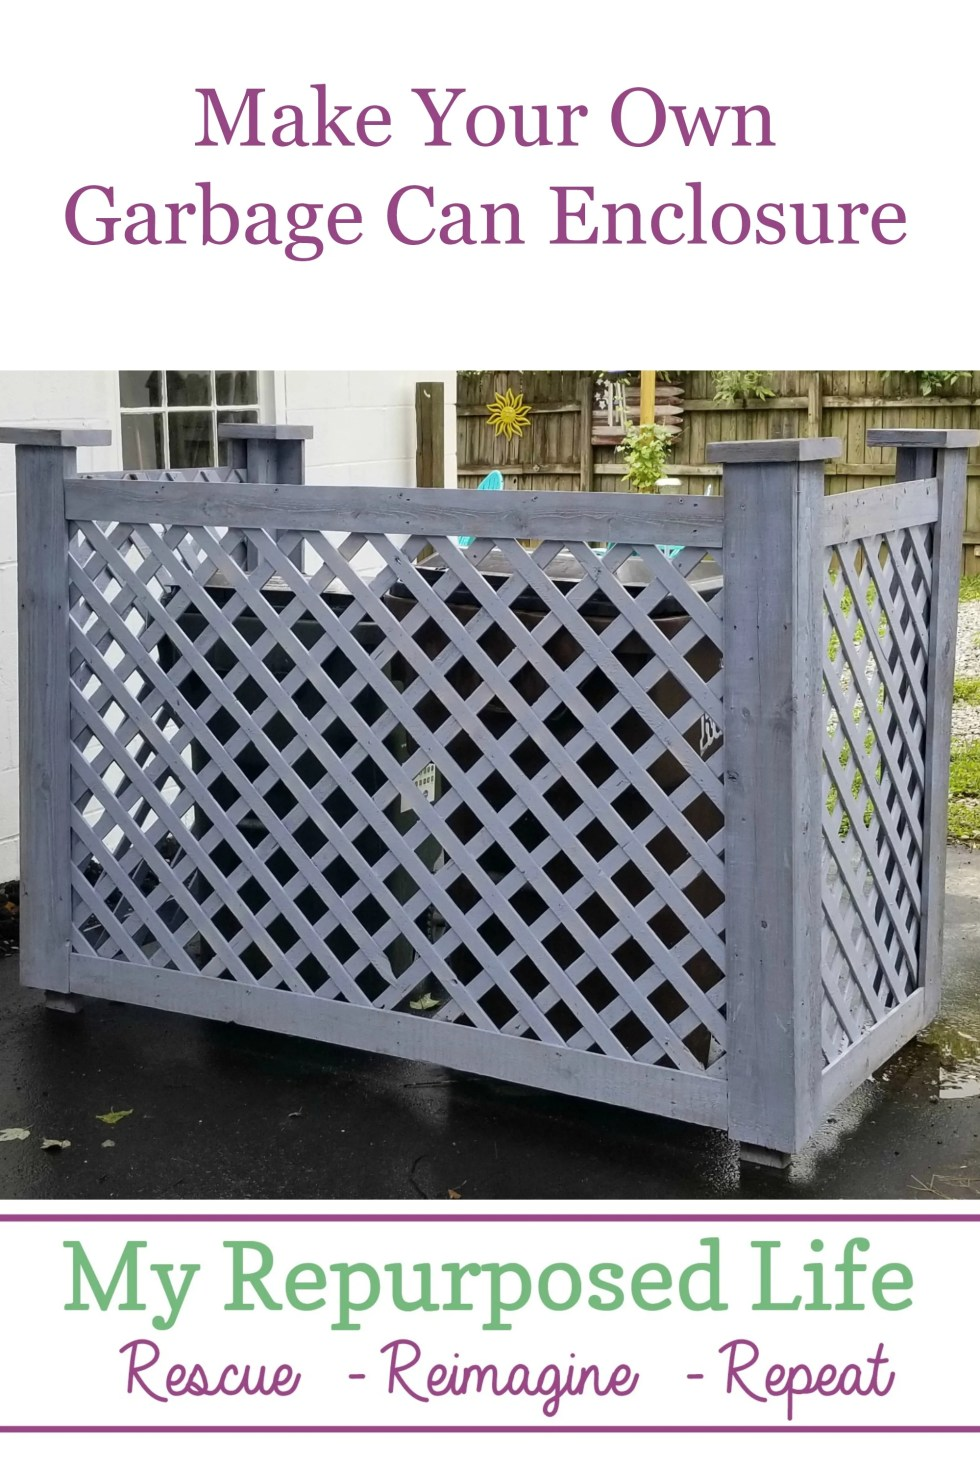 Make your own garbage can enclosure or trash can corral. Improve your curb appeal by hiding those unsightly wastebins! #MyRepurposedLife #garbagecan #curbappeal #eyesore #diy #tutorial via @repurposedlife